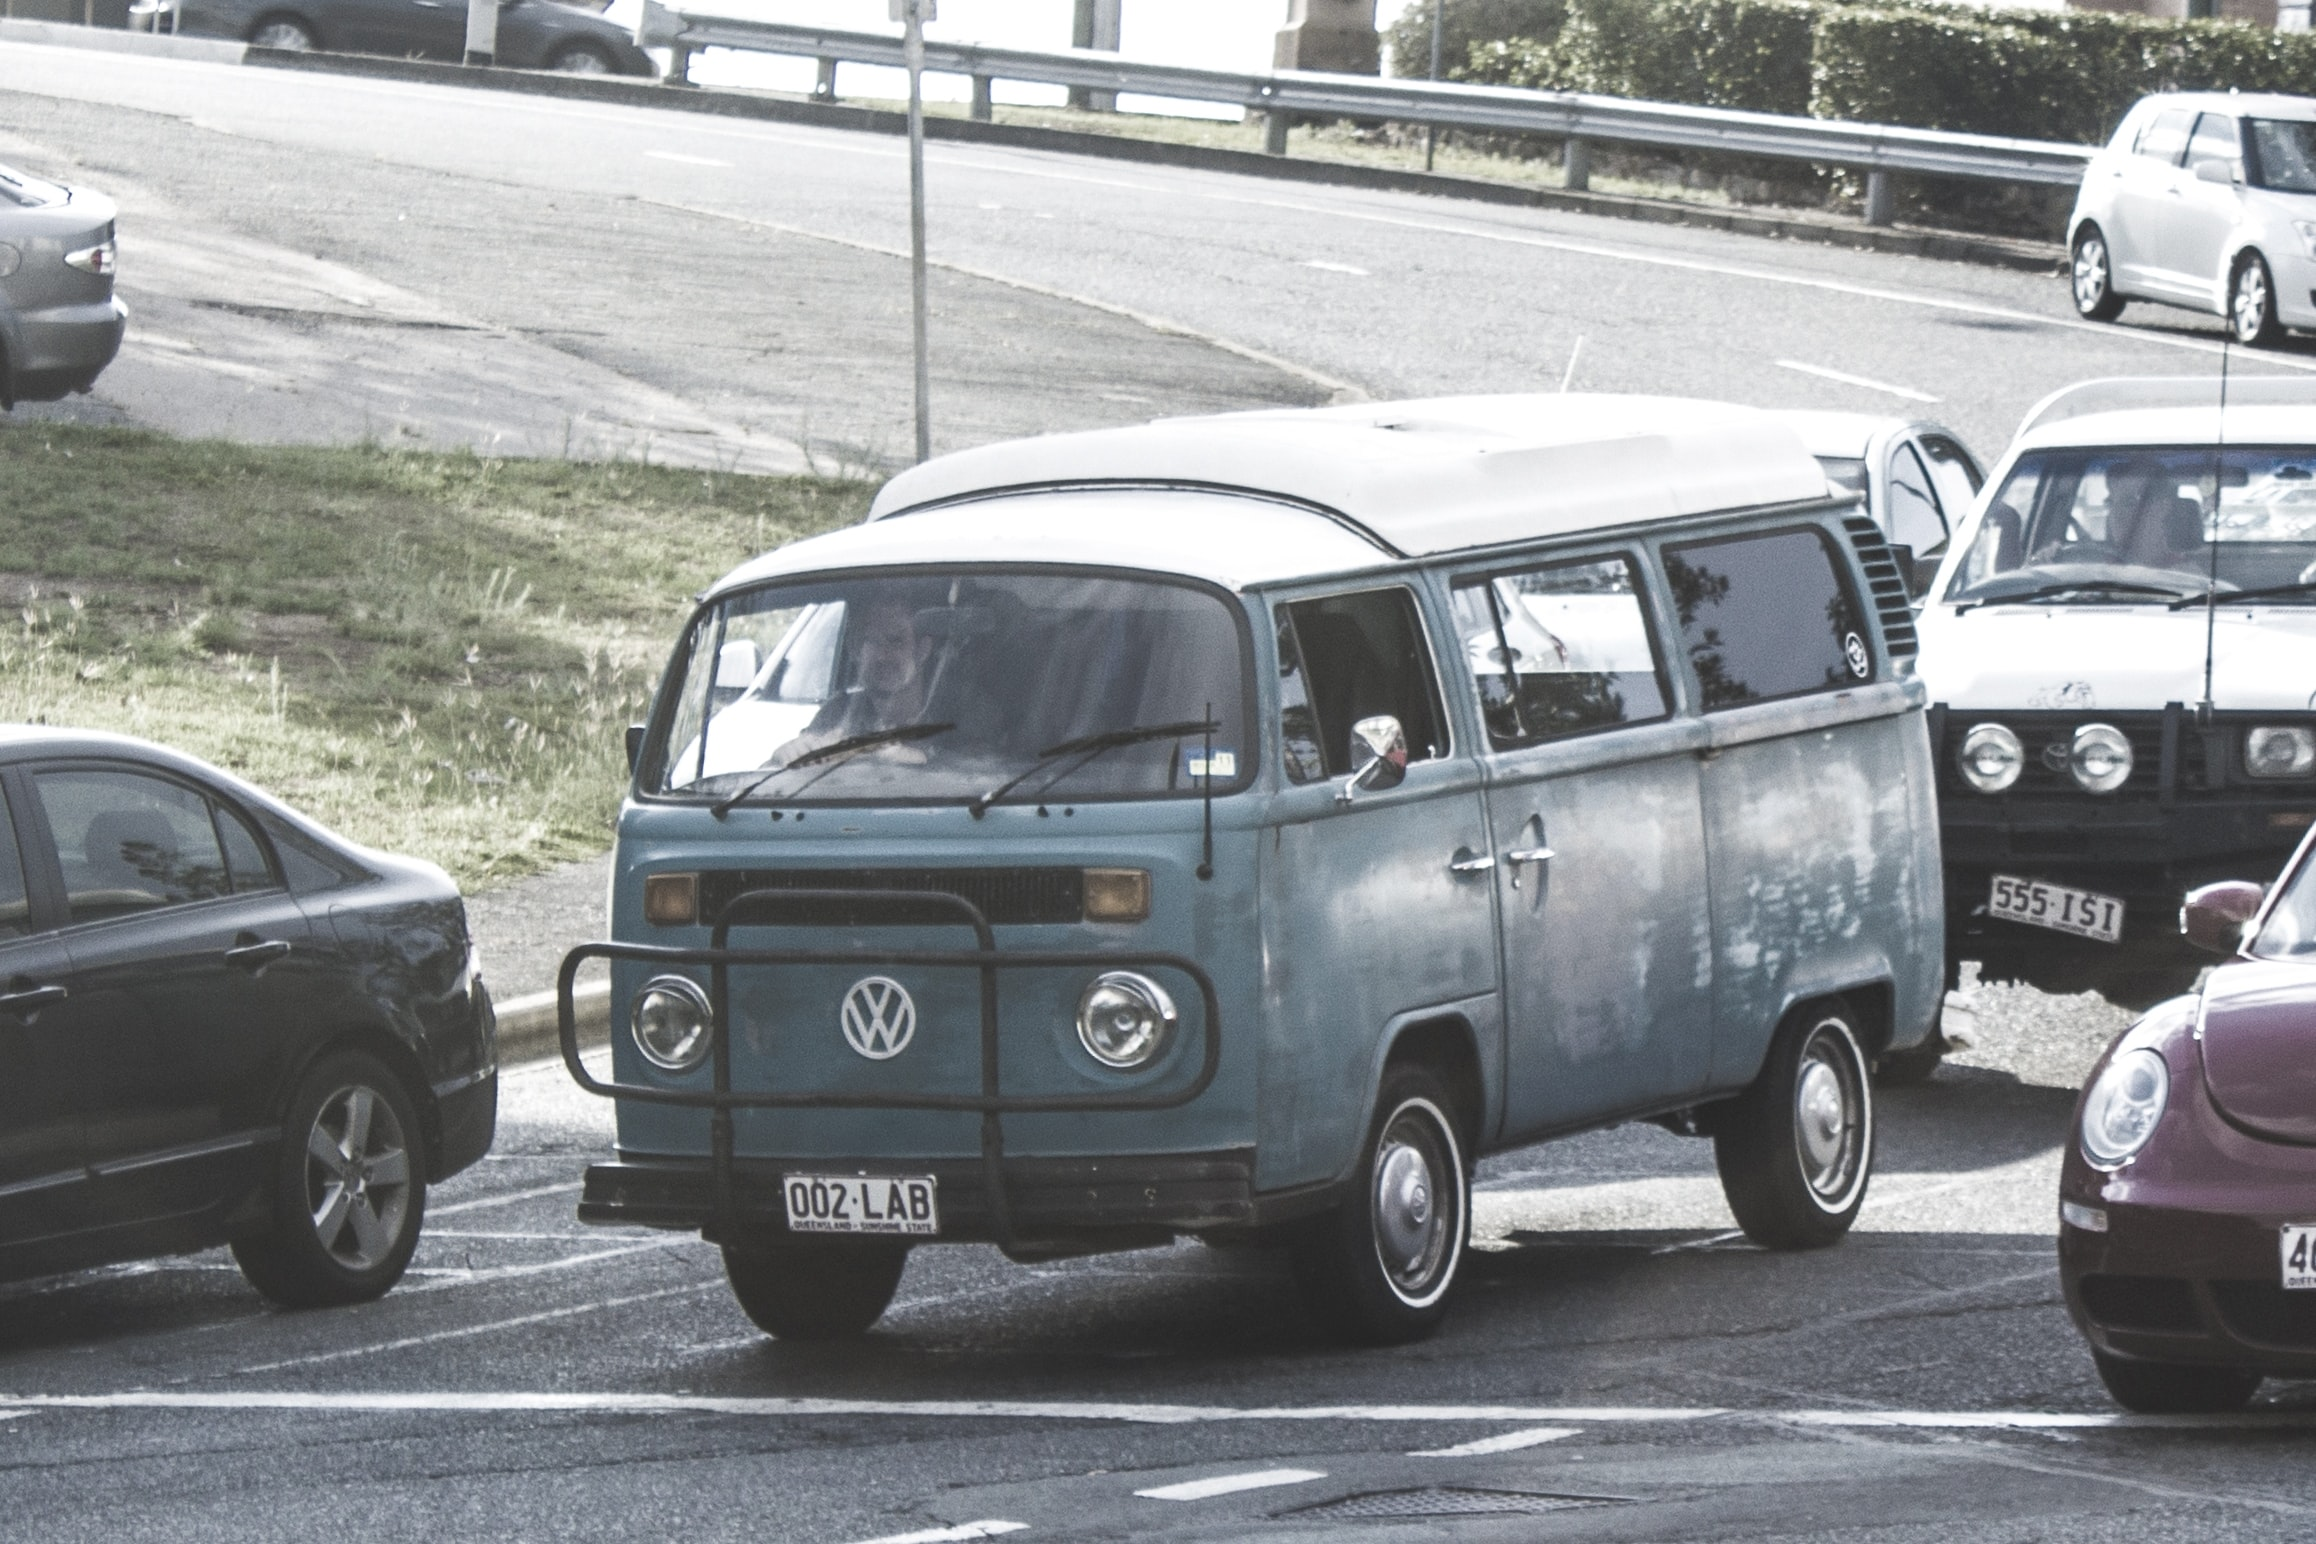 grey Volkswagen type 2 photography during day time